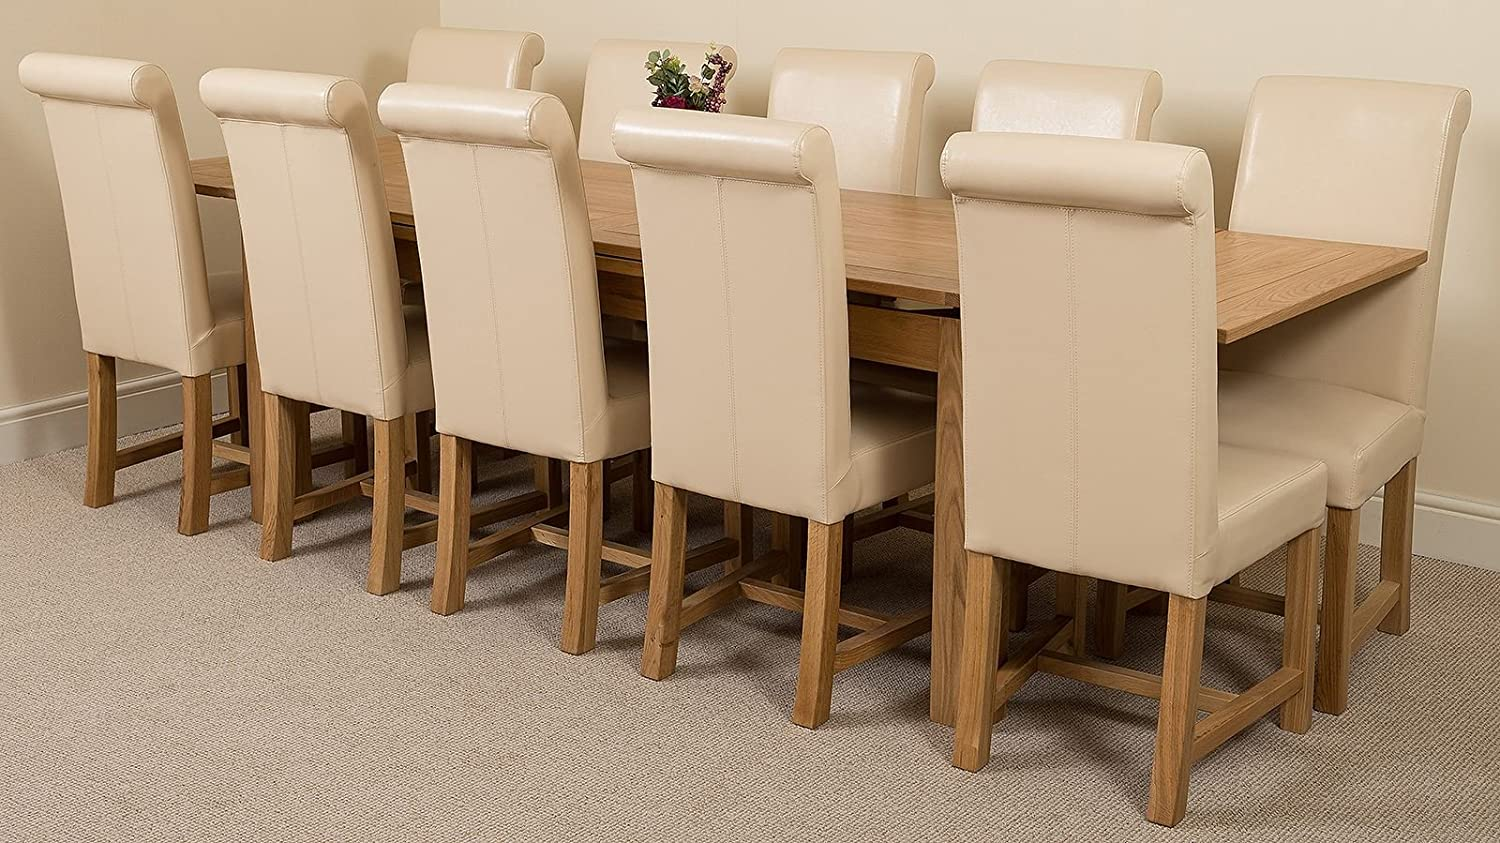 Modern furniture direct richmond large extending solid oak dining table 10 ivory leather chairs 100 solid oak 200cm 280cm extending fast